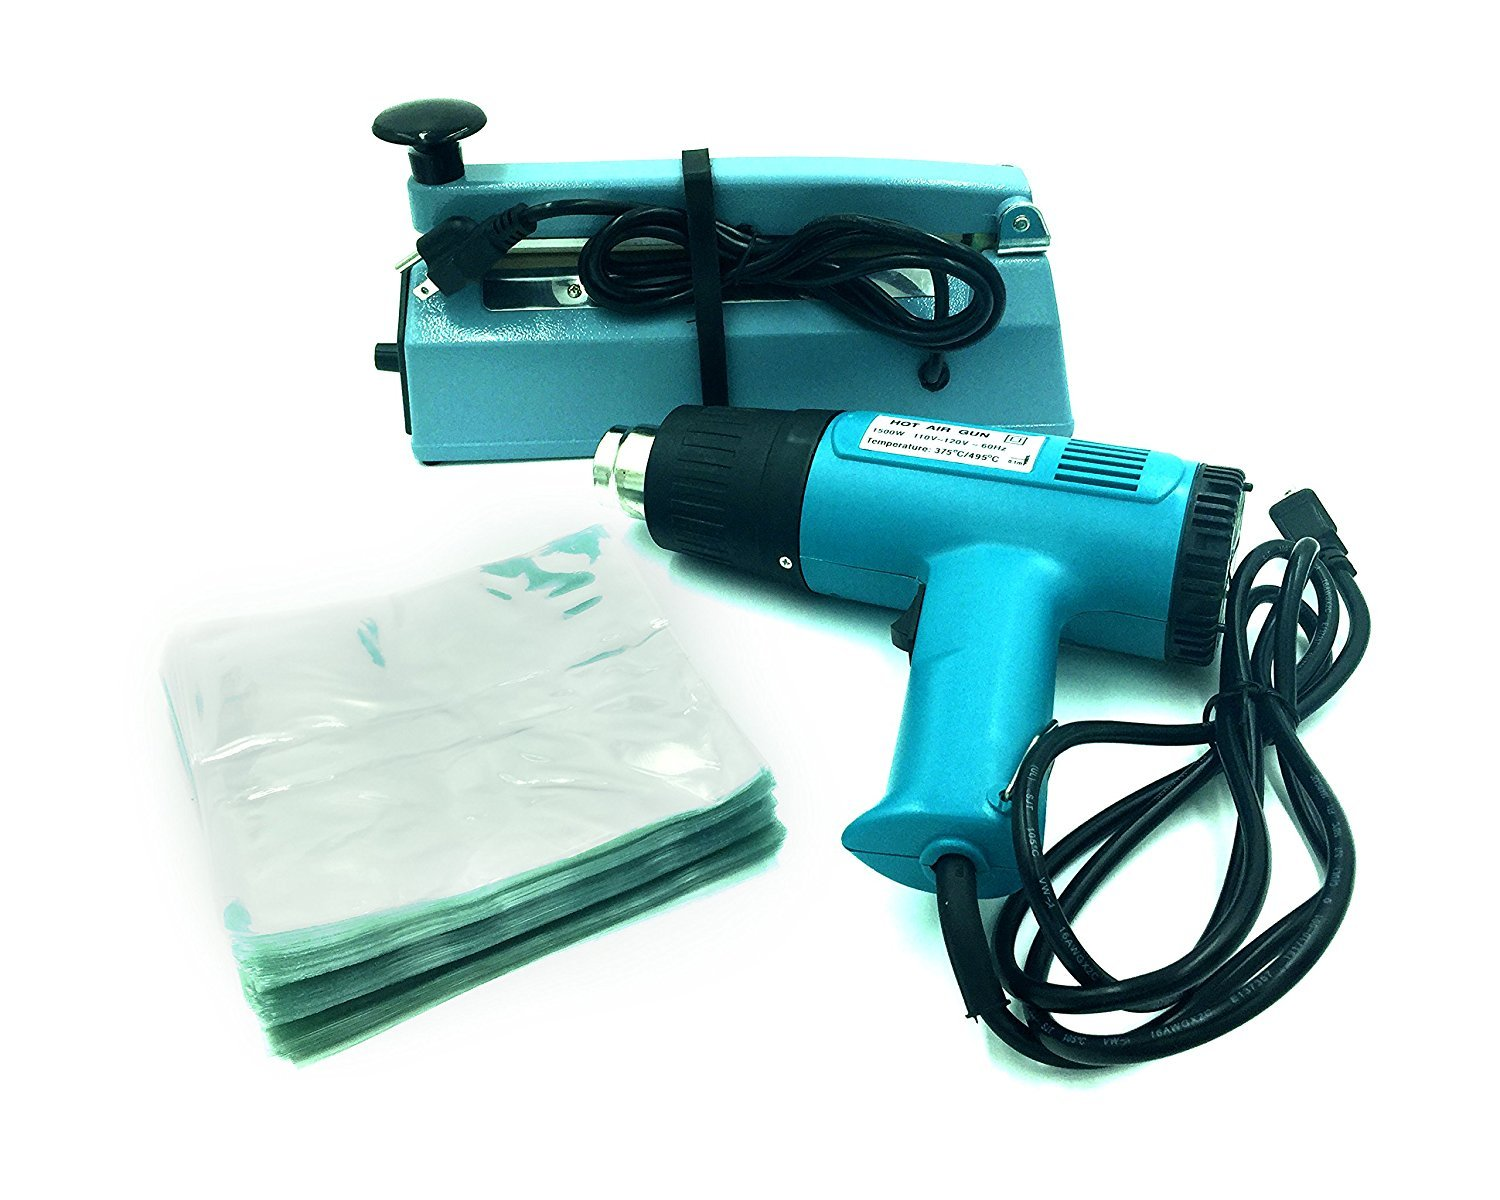 Simplego SWK-8-04CD CD Shrink Wrap System w/ Heat Gun & FS-200 Sealer